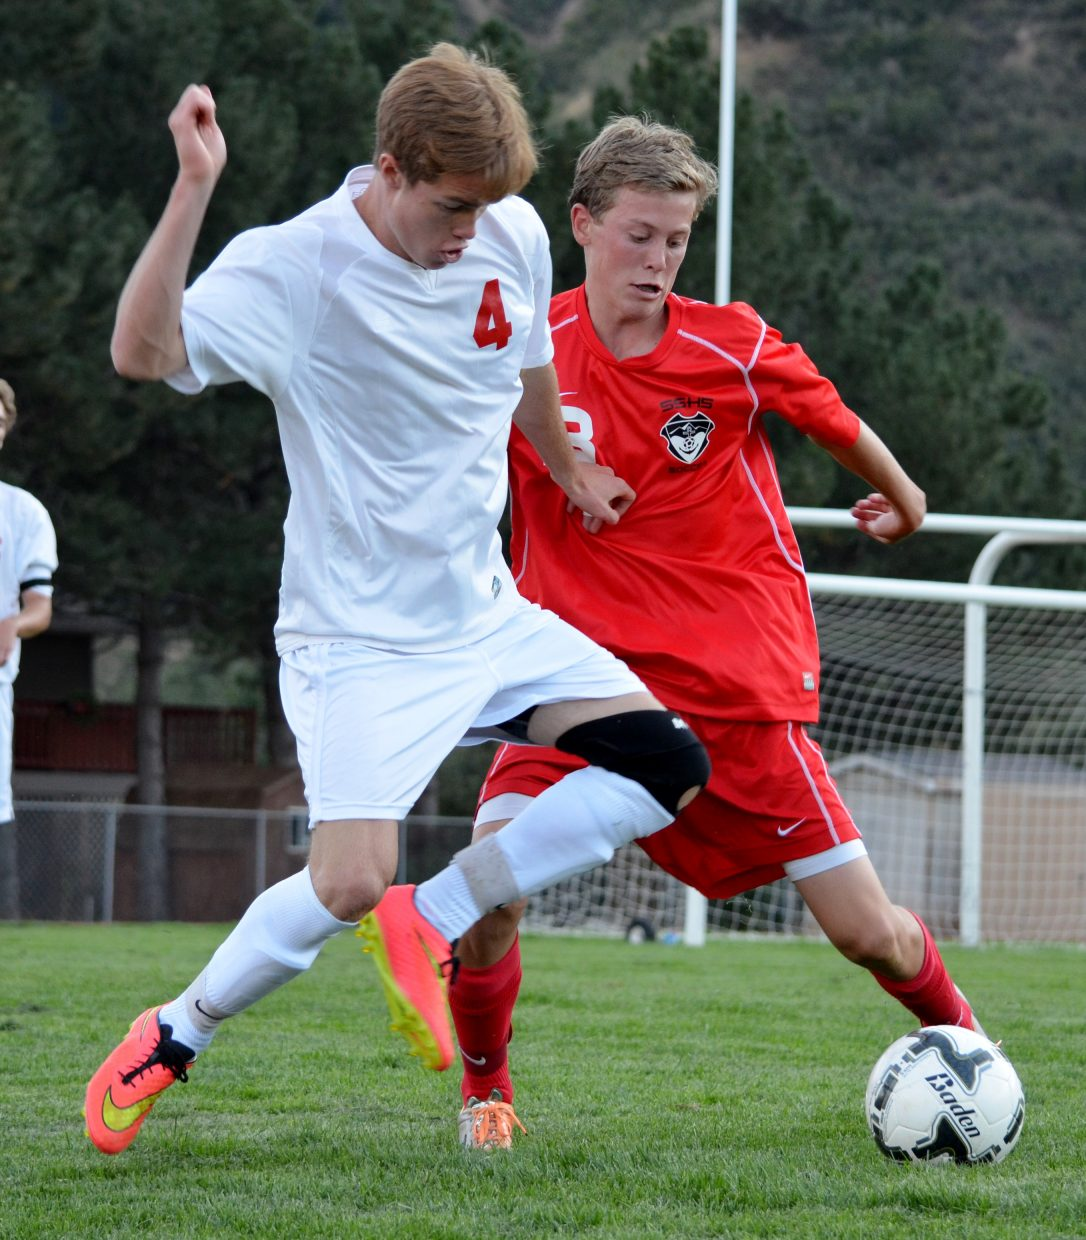 Glenwood Springs High School's Will Osier, left, battles for possession of the soccer ball with Will Beurskens, of Steamboat Springs, during the first half of a Class 4A Western Slope League soccer match at Stubler Memorial Field on Tuesday. The Sailors beat the Demons, 2-1.